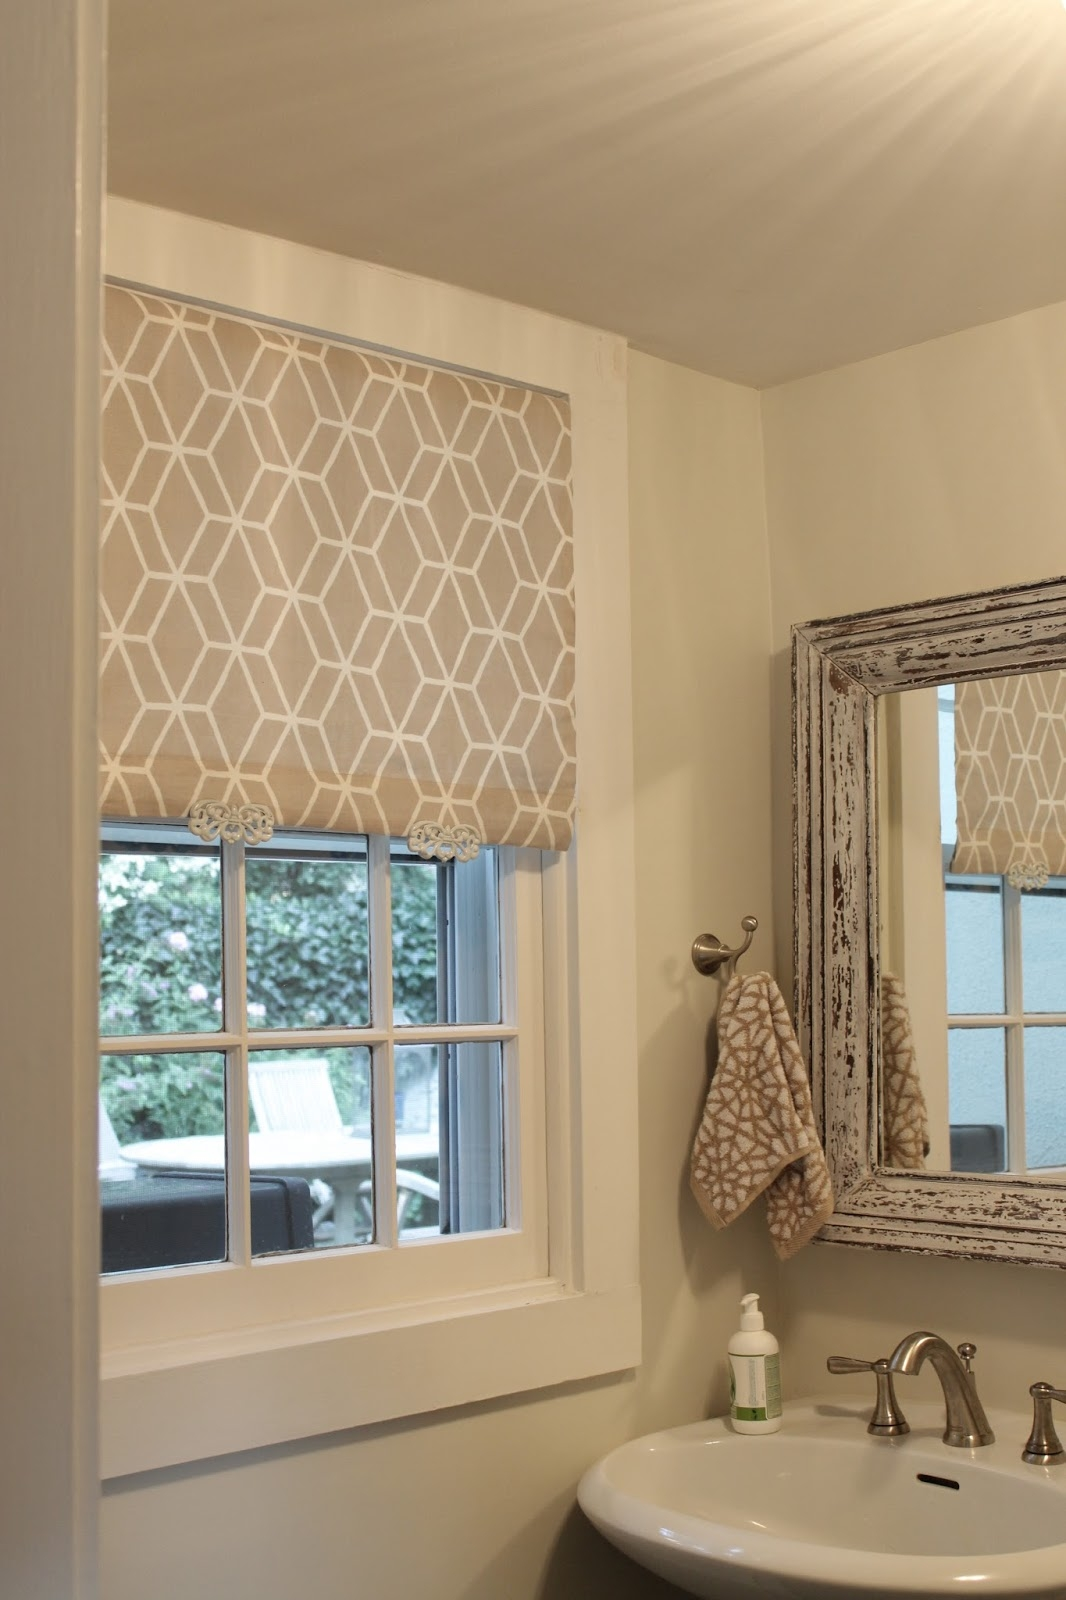 The Picket Fence Projects So Shady White Roller Blind Fabric Pertaining To Cloth Roller Blinds (Image 15 of 15)